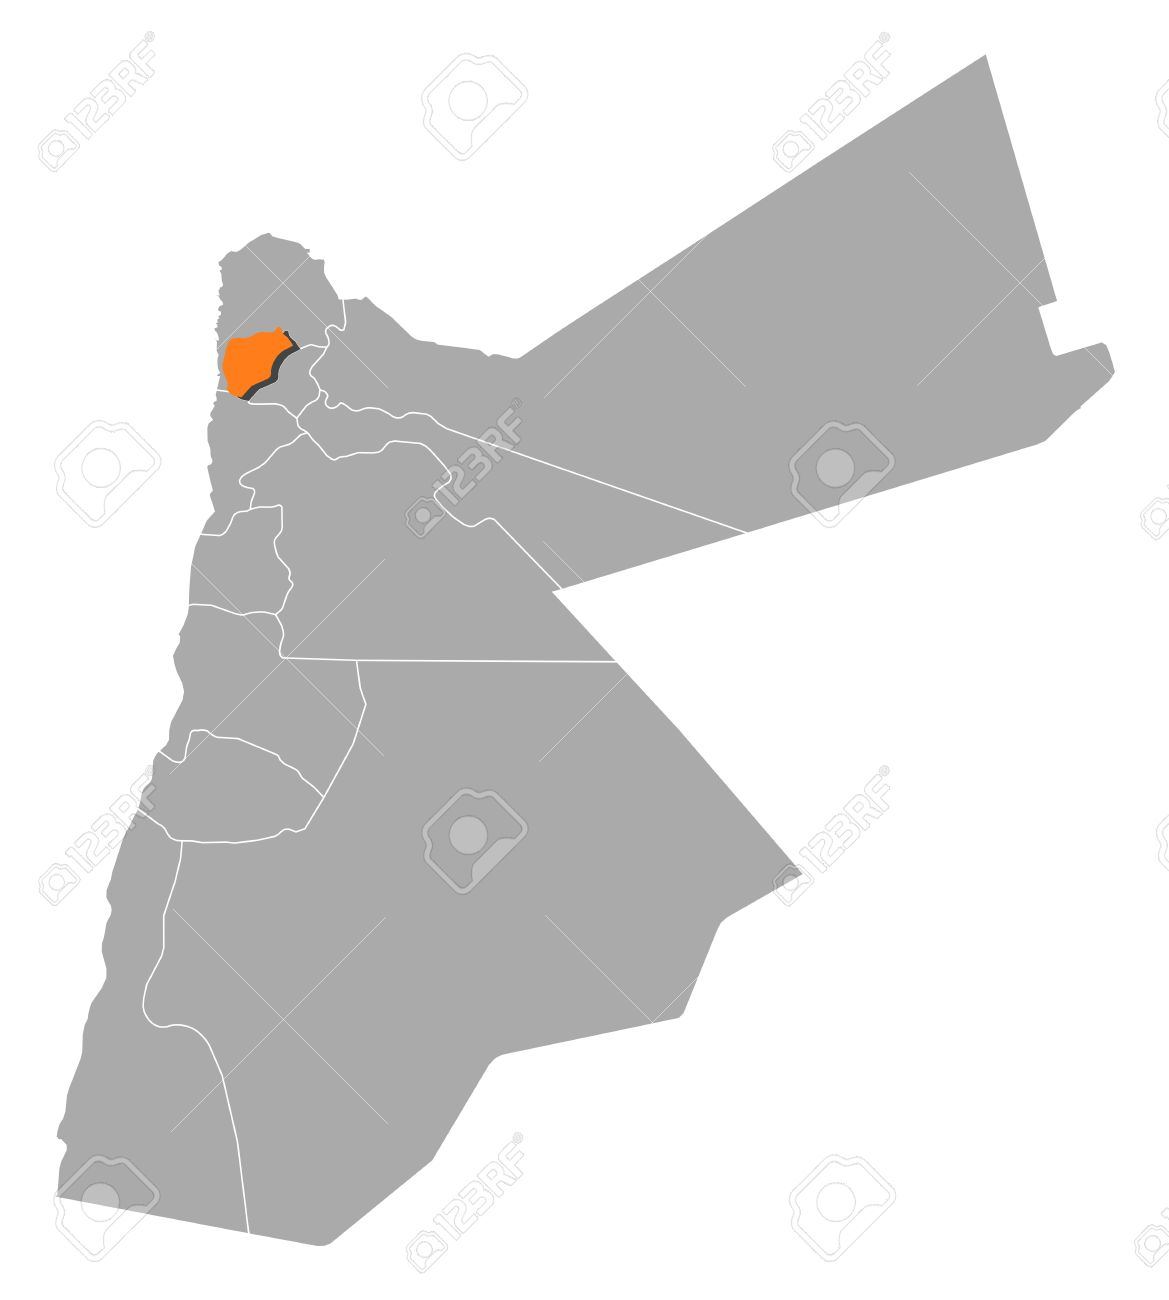 Political Map Of Jordan With The Several Governorates Where Ajloun.